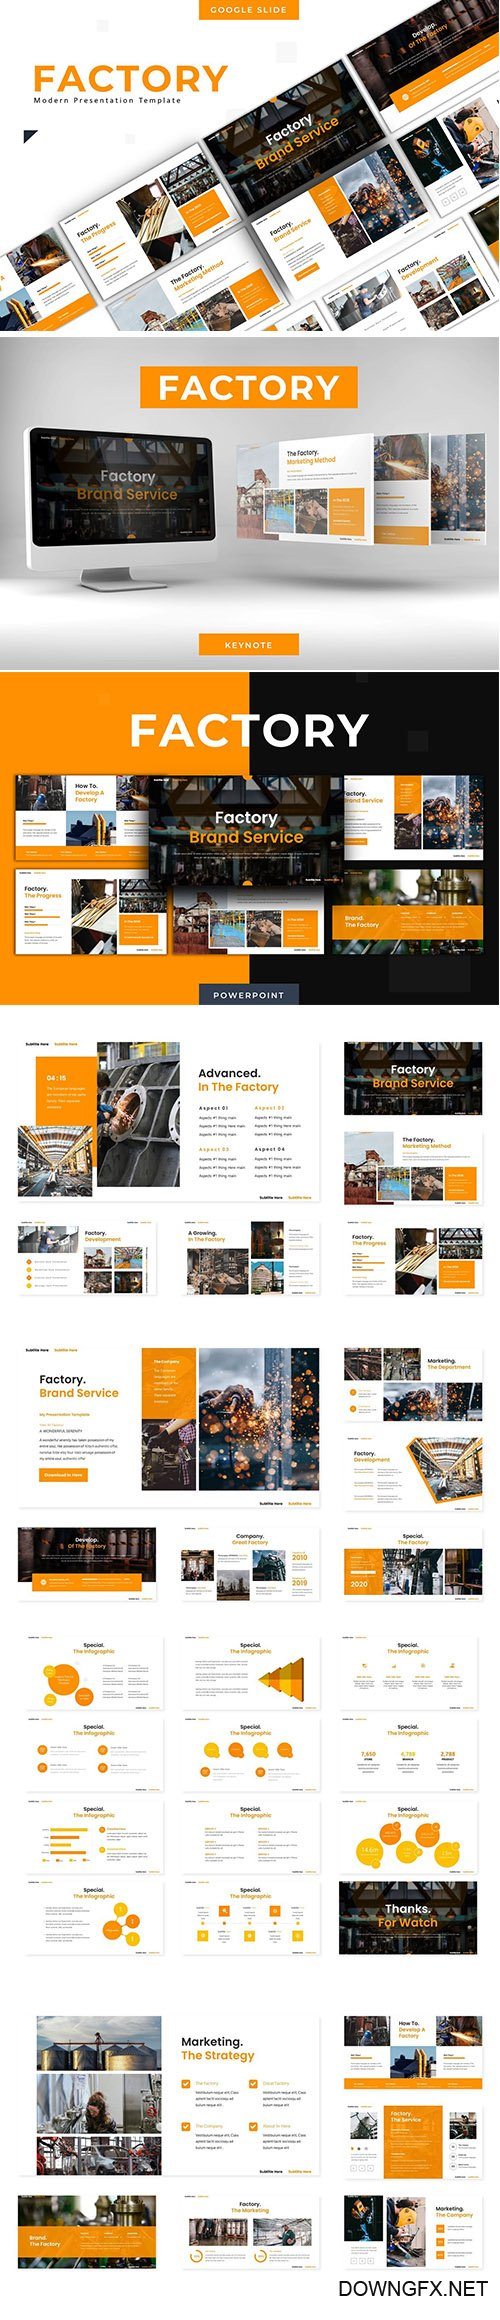 Factory Brand Services - Powerpoint Template, Keynote and Google Slide Template